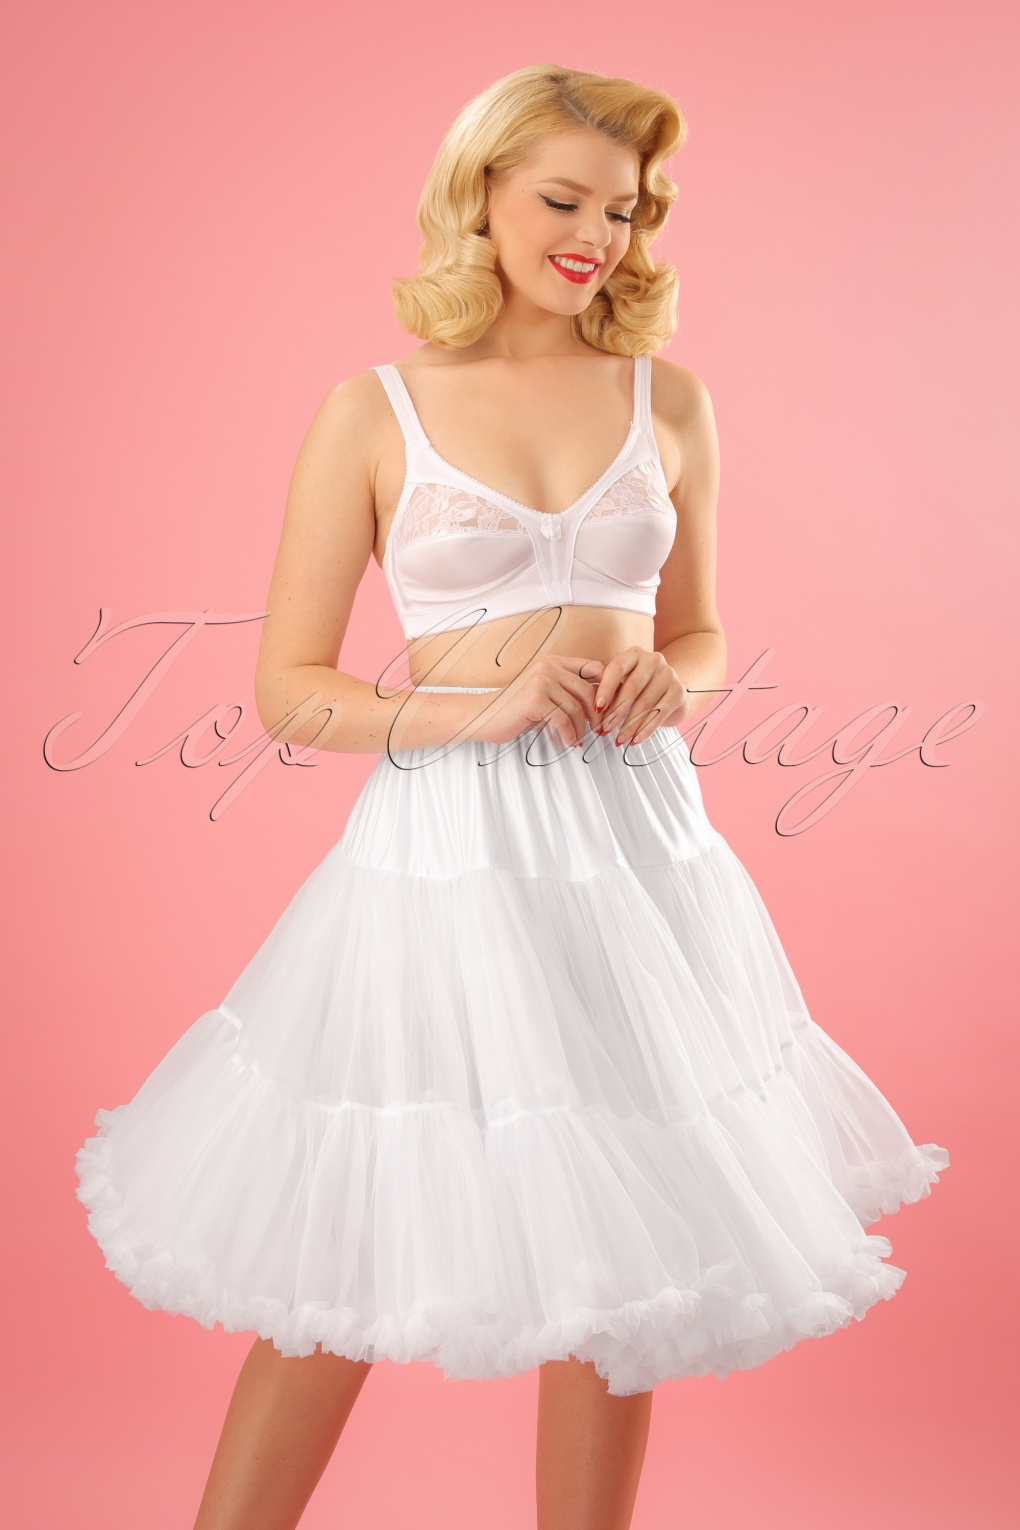 1960s Style Dresses, Clothing, Shoes UK 50s Lola Lifeforms Petticoat in White £45.14 AT vintagedancer.com